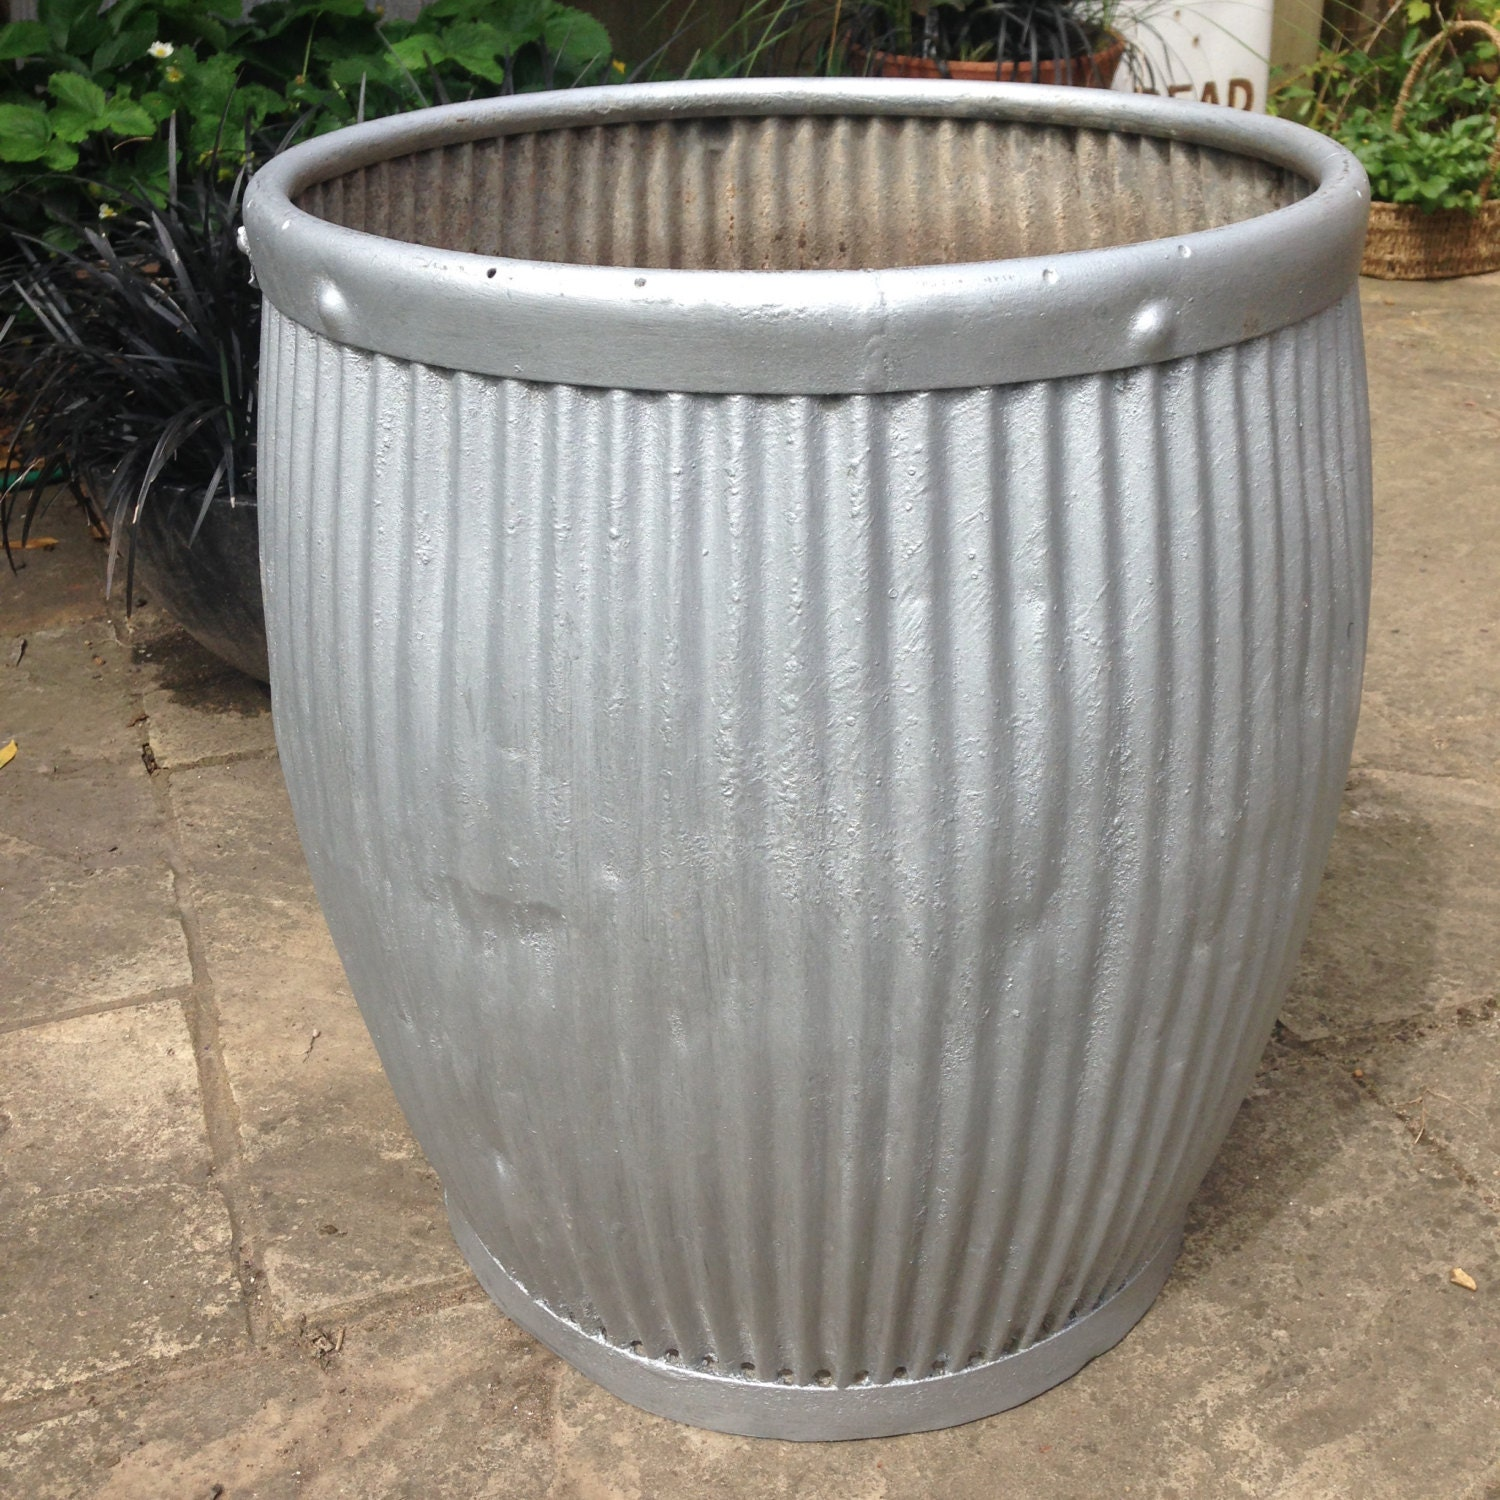 dolly tub wash tub vintage planter large plant pot plant